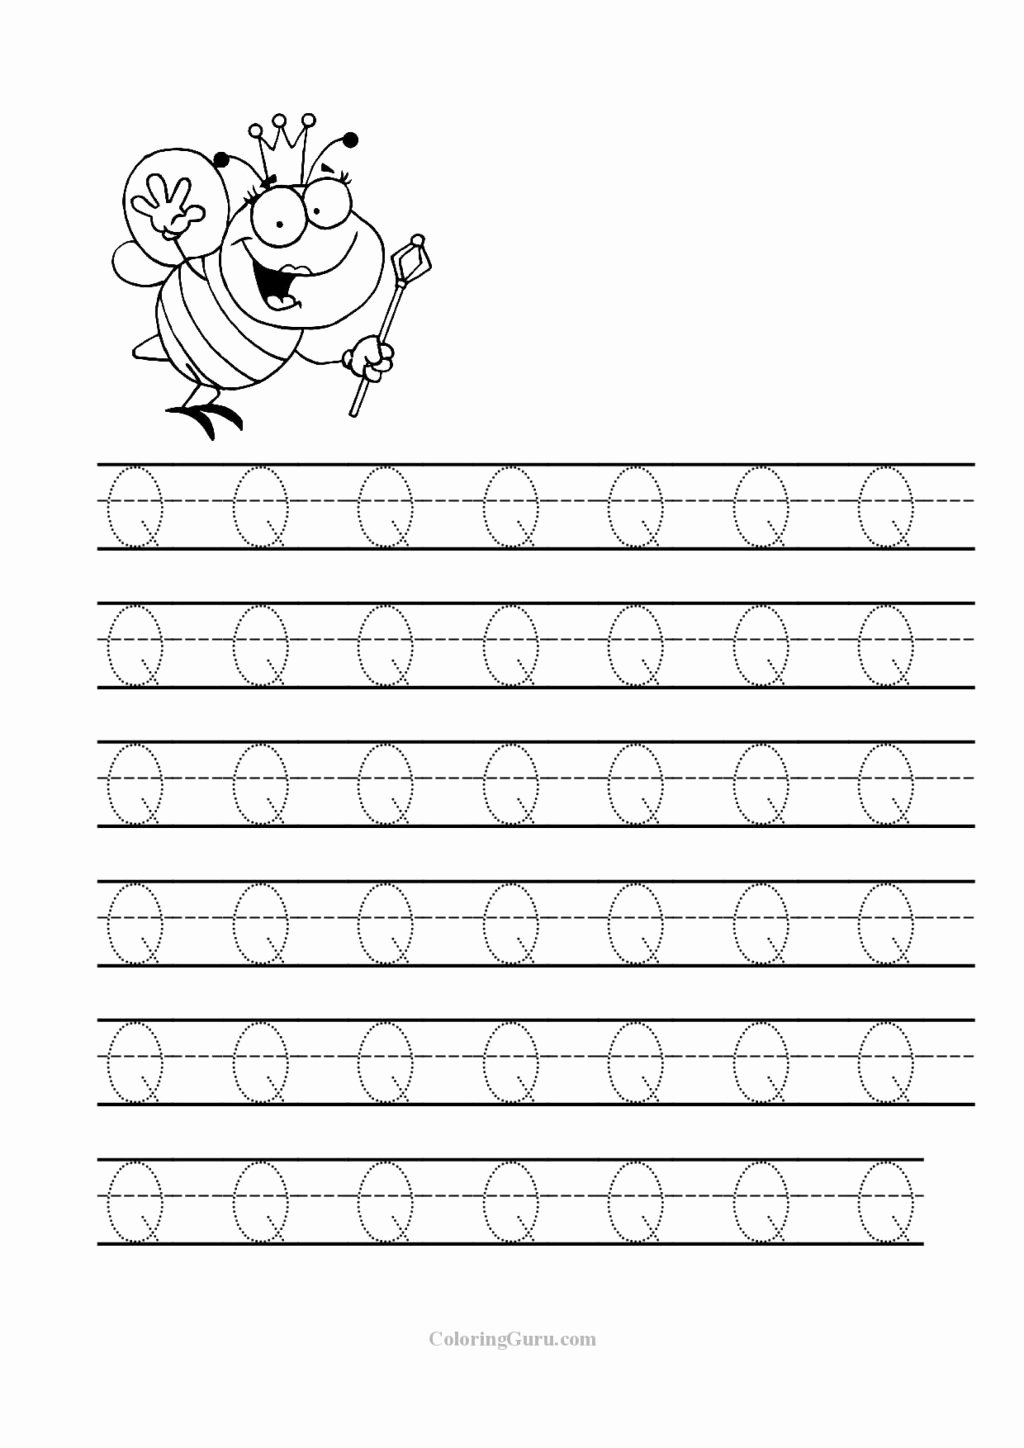 Q Worksheets for Preschoolers top Worksheet Tracing Letter Q Worksheets for Preschool Jpg